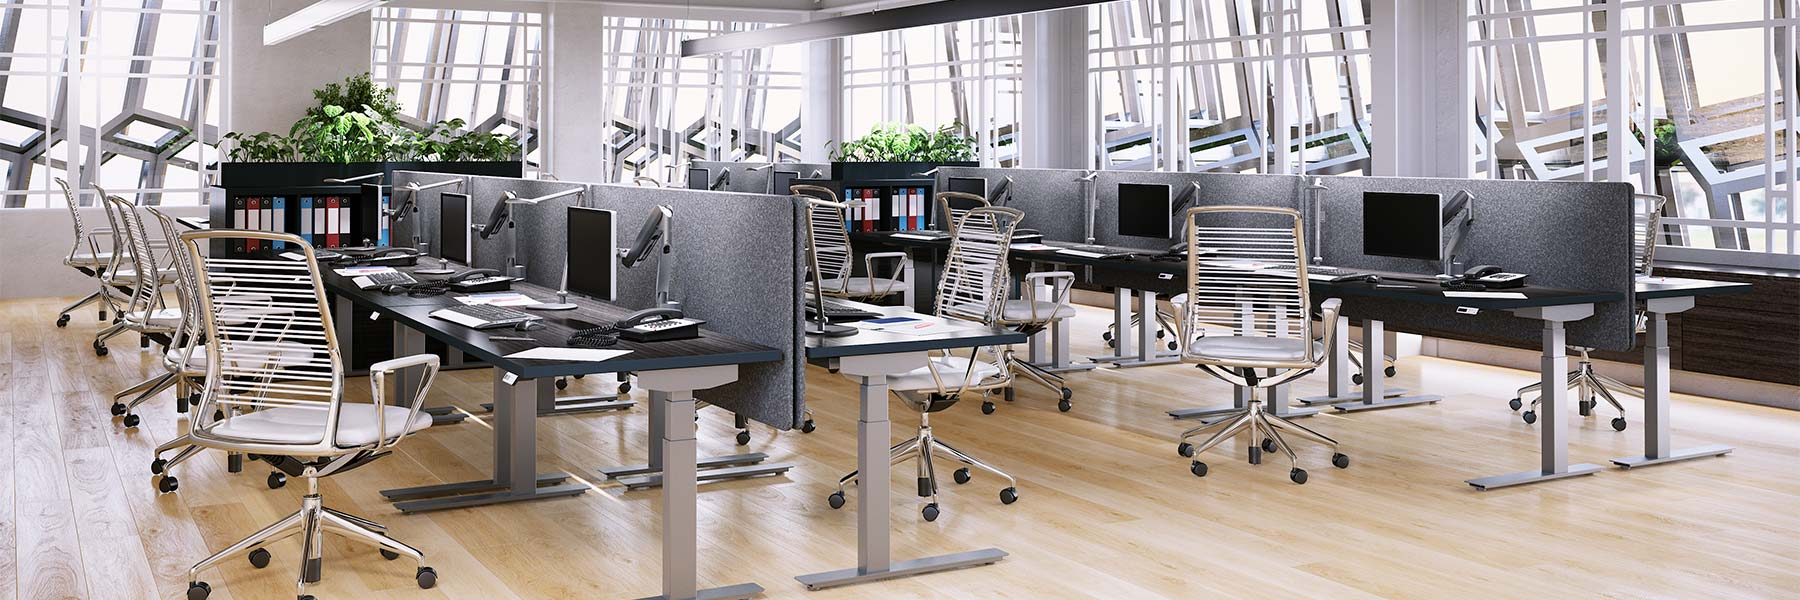 New & Used Office Furniture Greenville SC | Total Office 360